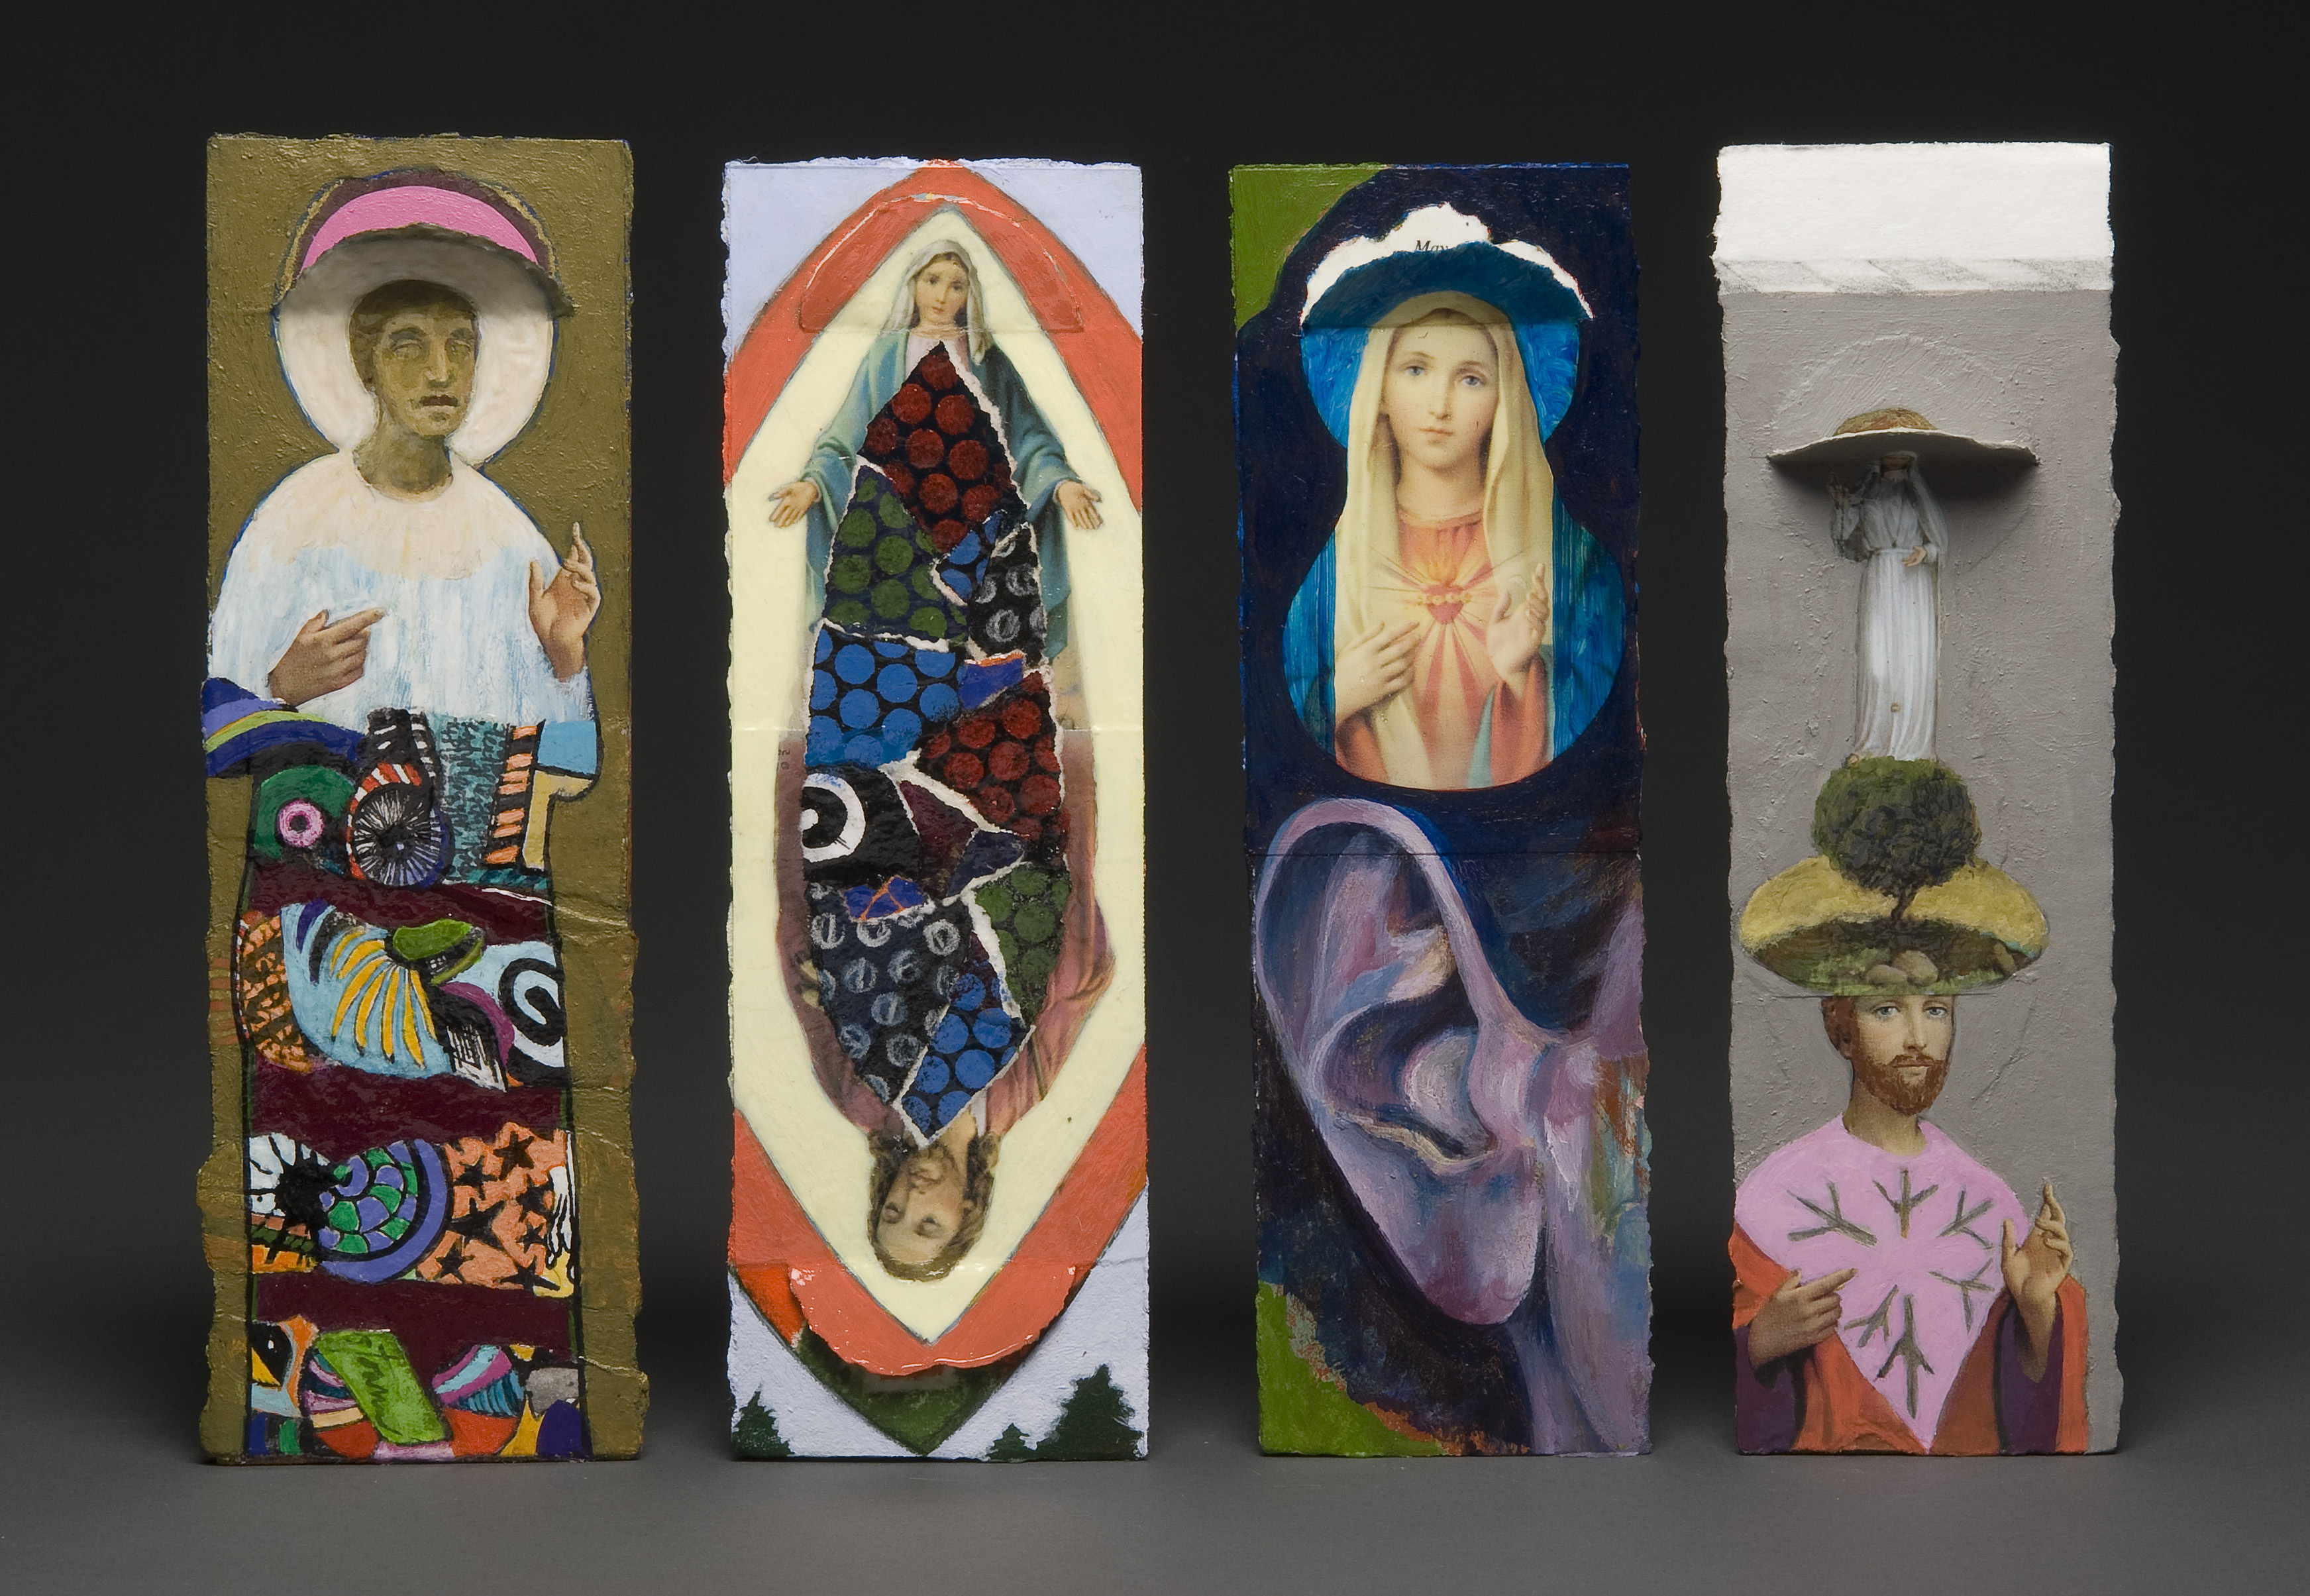 statues, installation, my father, funeral cards, death, holy, shelves, painting, Mary, ears, trees, collage